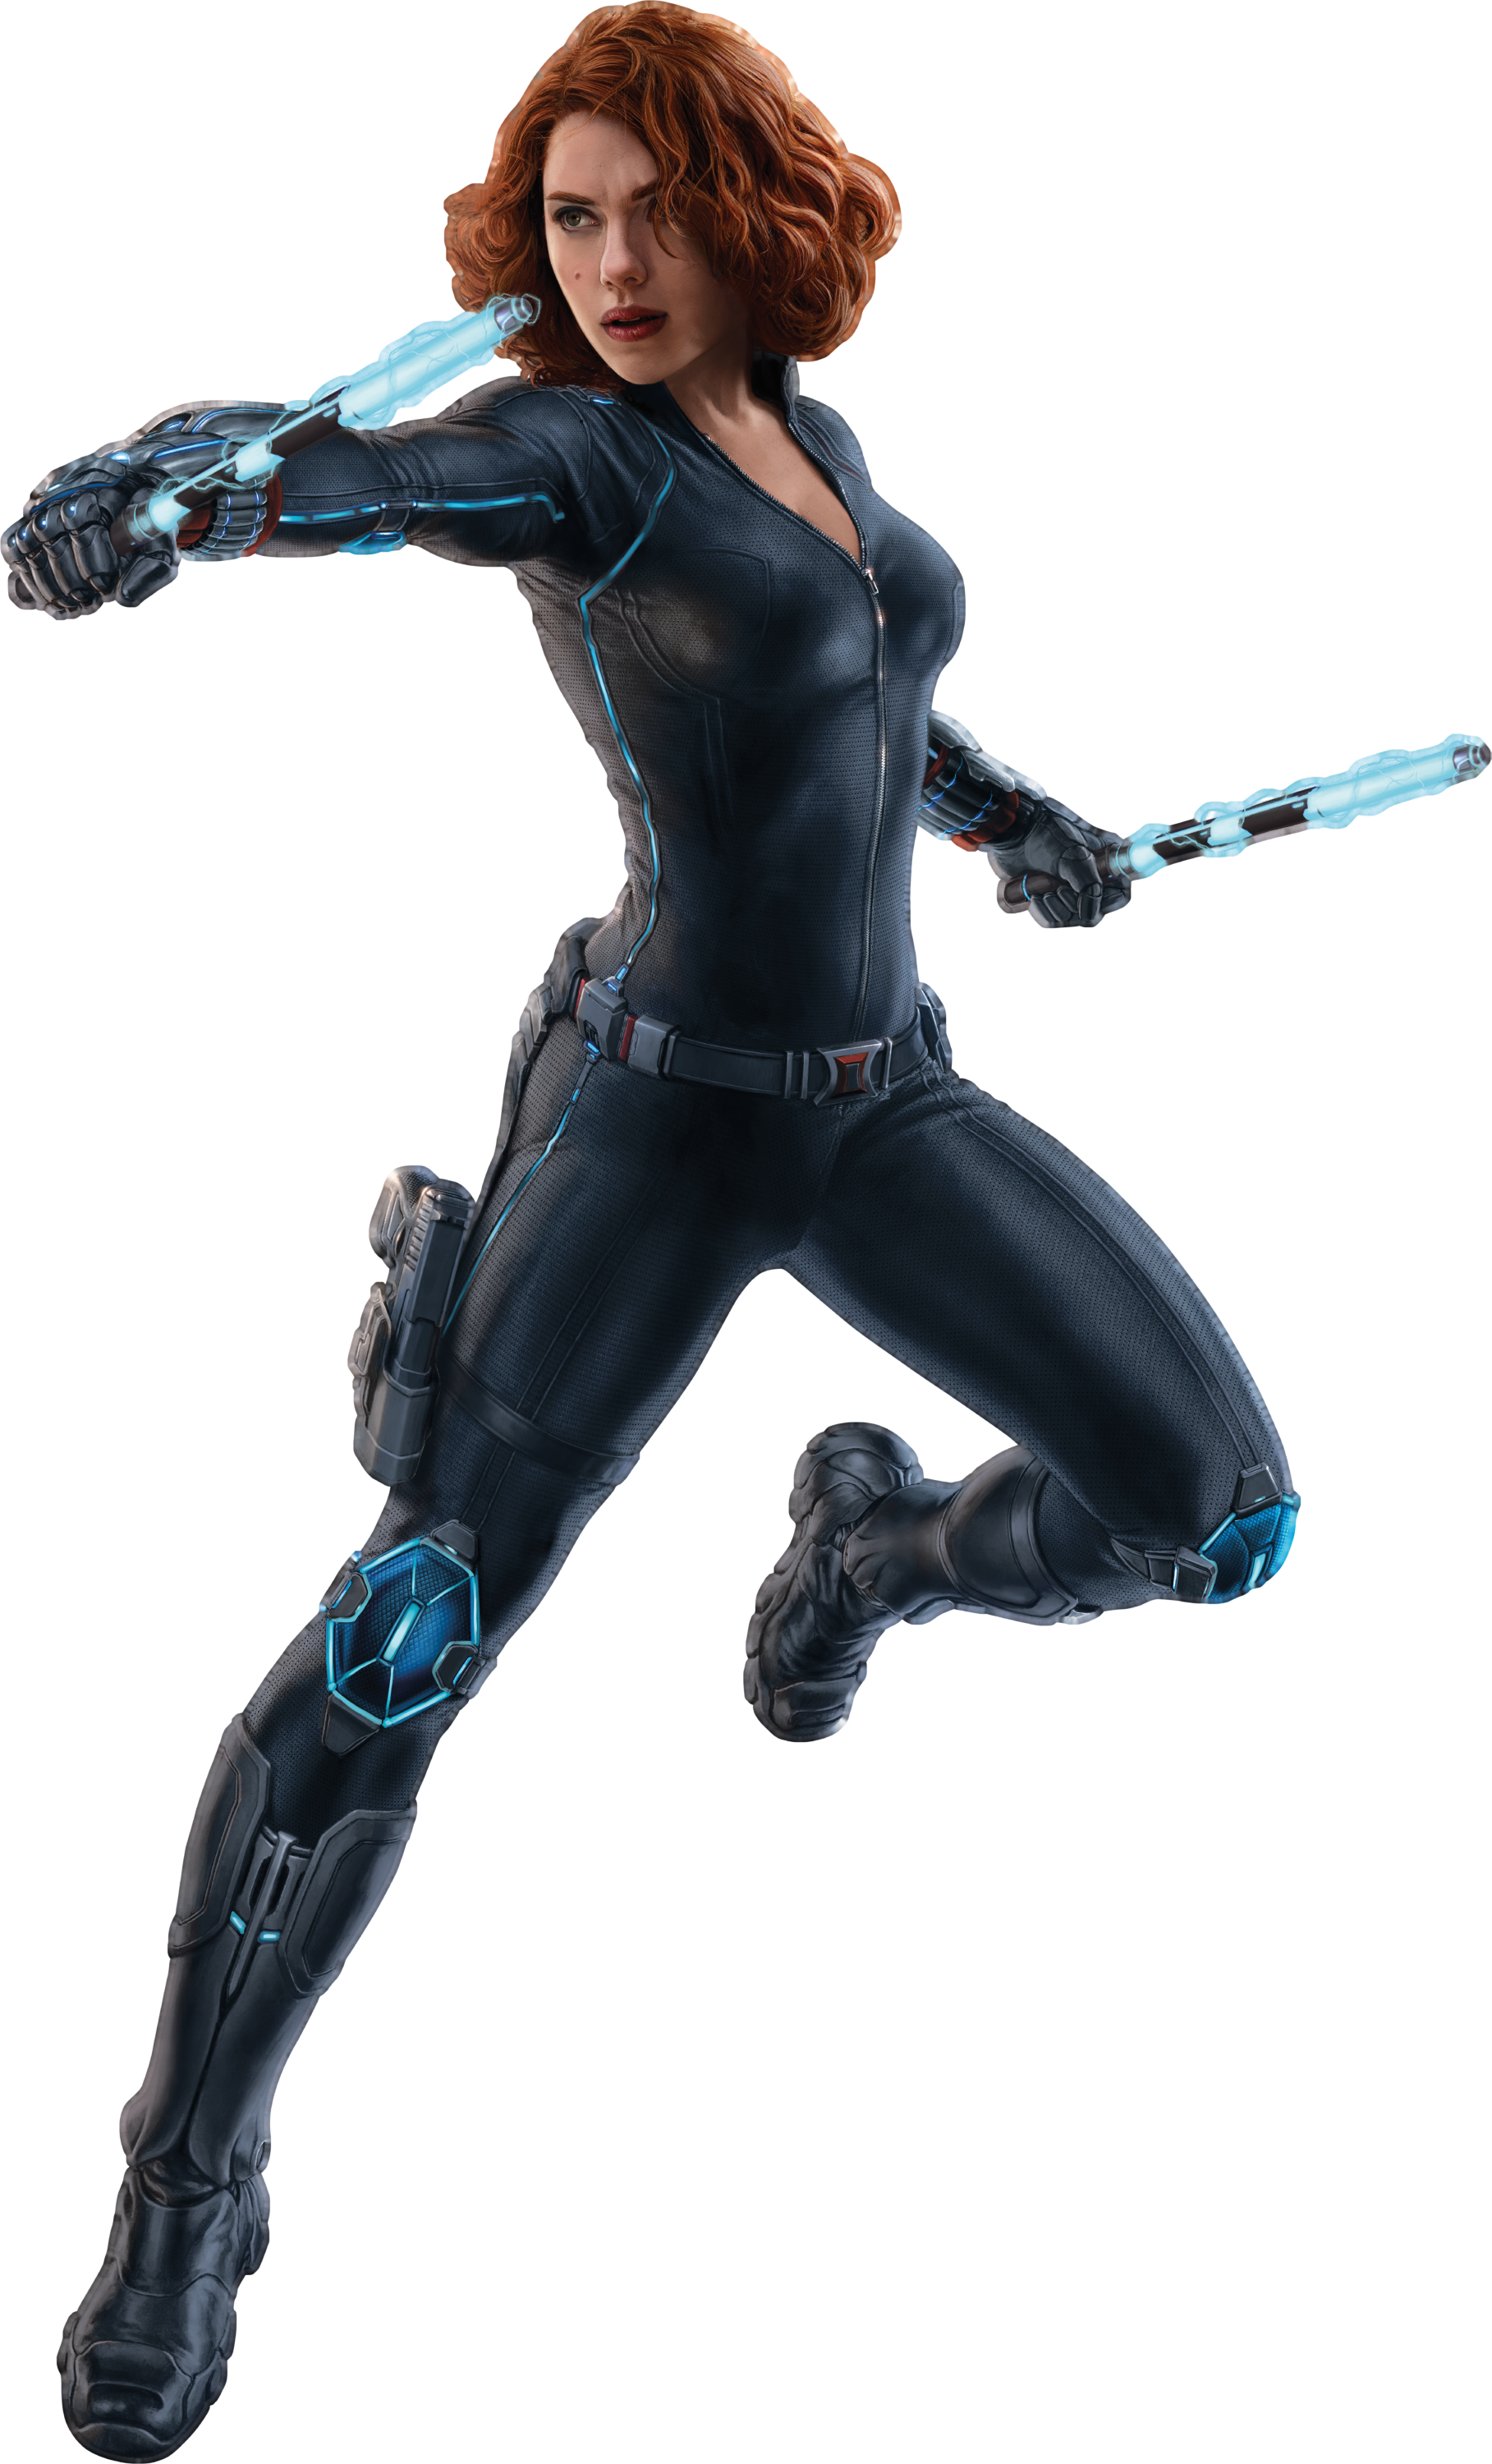 Black widow avengers png. Image aou render marvel